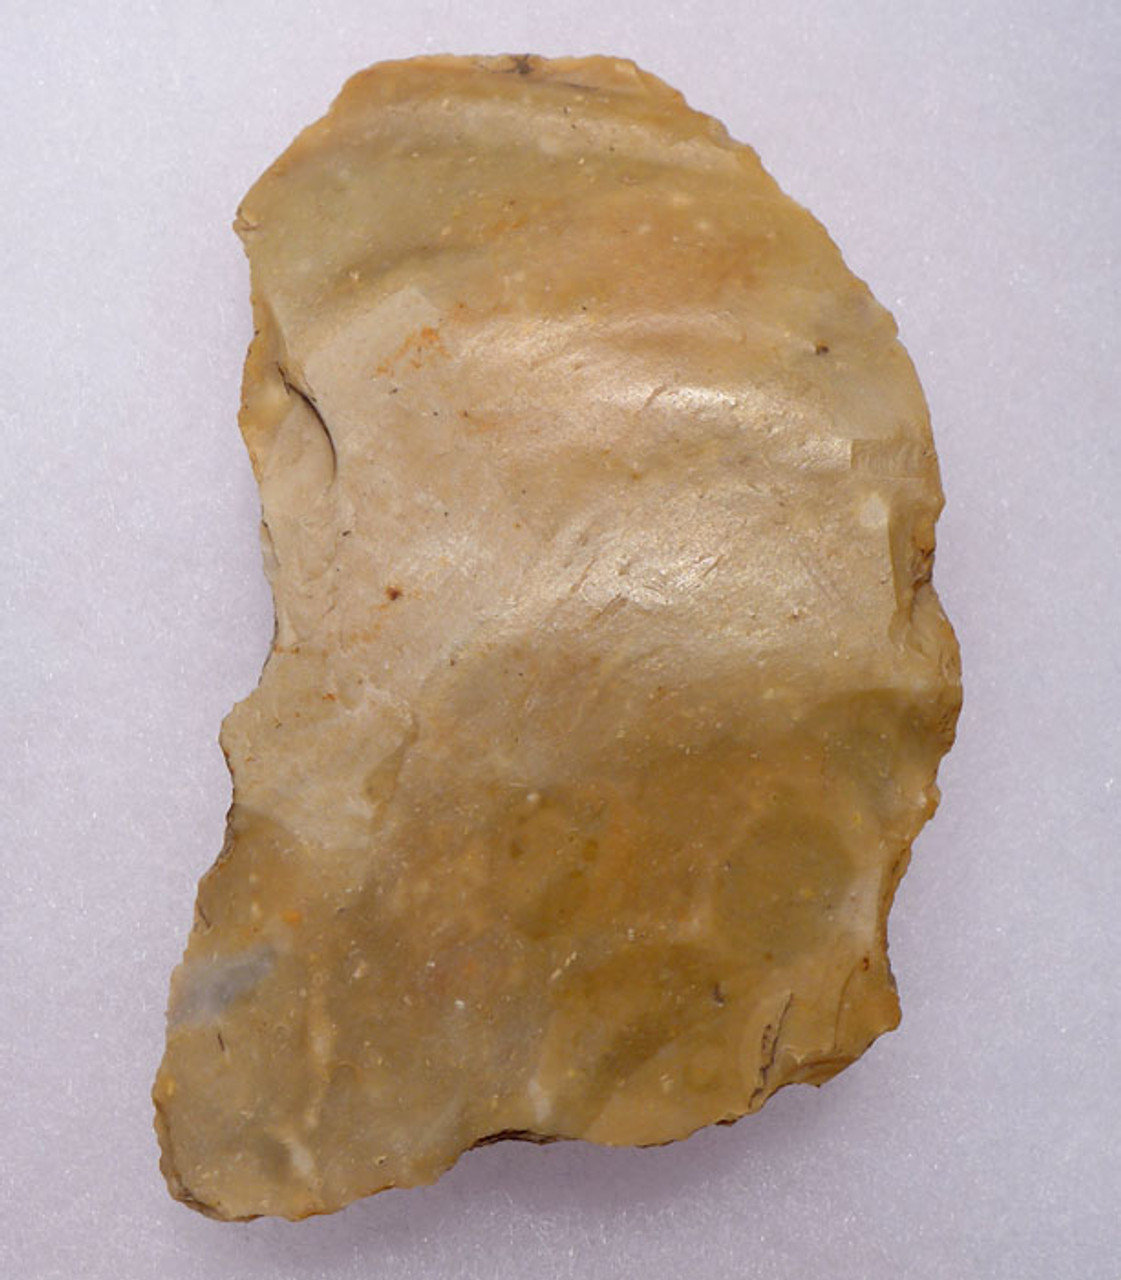 M309 - EXCEPTIONAL AND LARGE MOUSTERIAN NEANDERTHAL CONVEX FLAKE SCRAPER FROM FRANCE